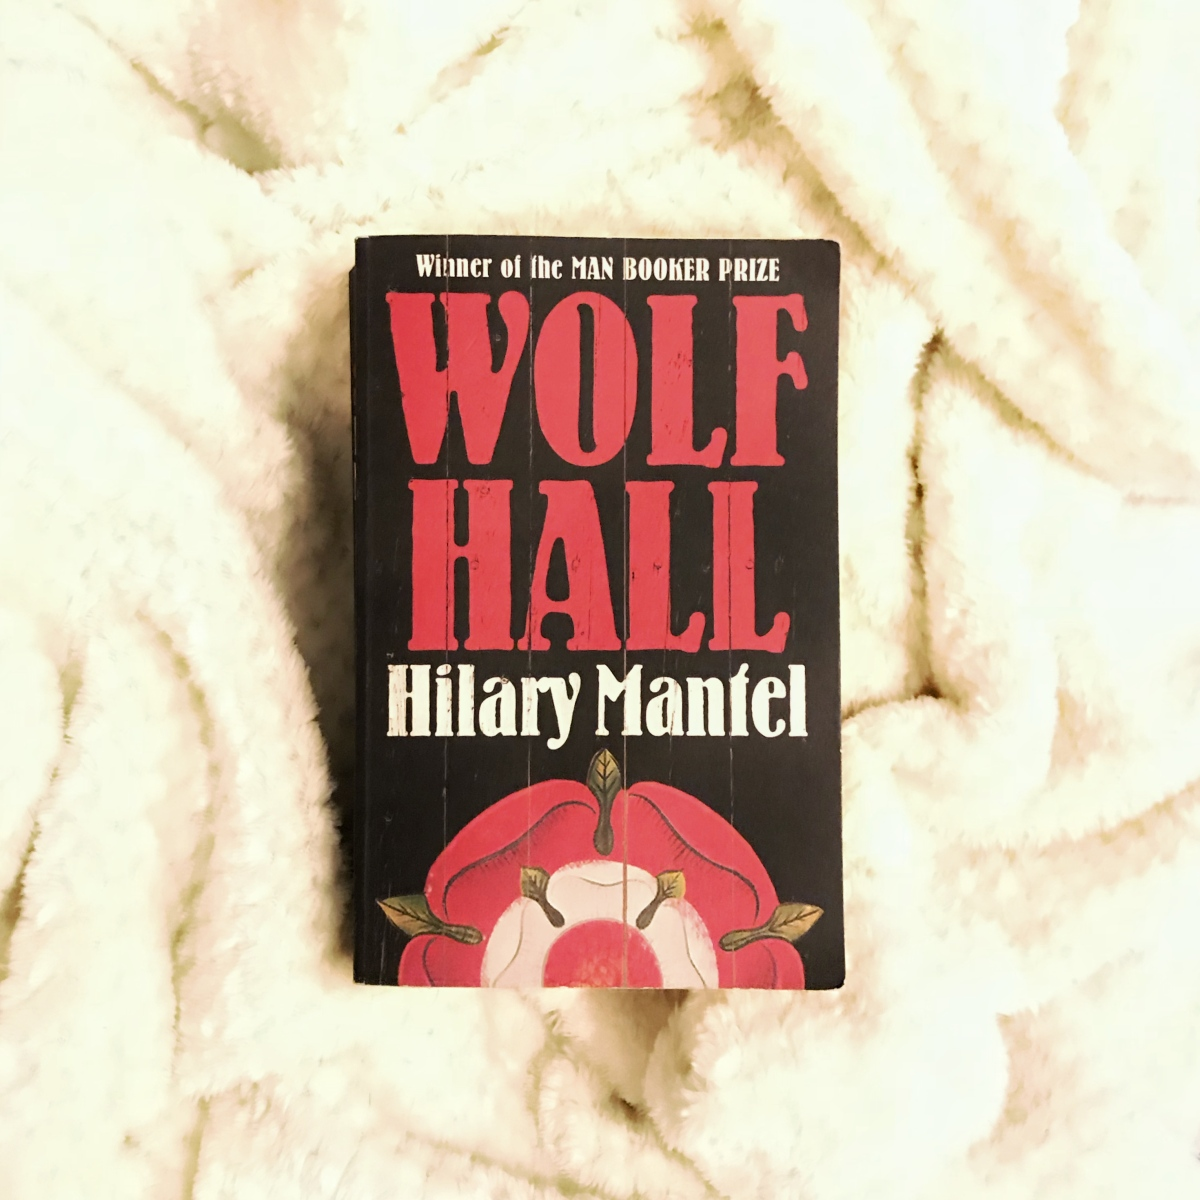 Book Review: 'Wolf Hall' by Hilary Mantel – The Machiavellian's 'How To' Guide